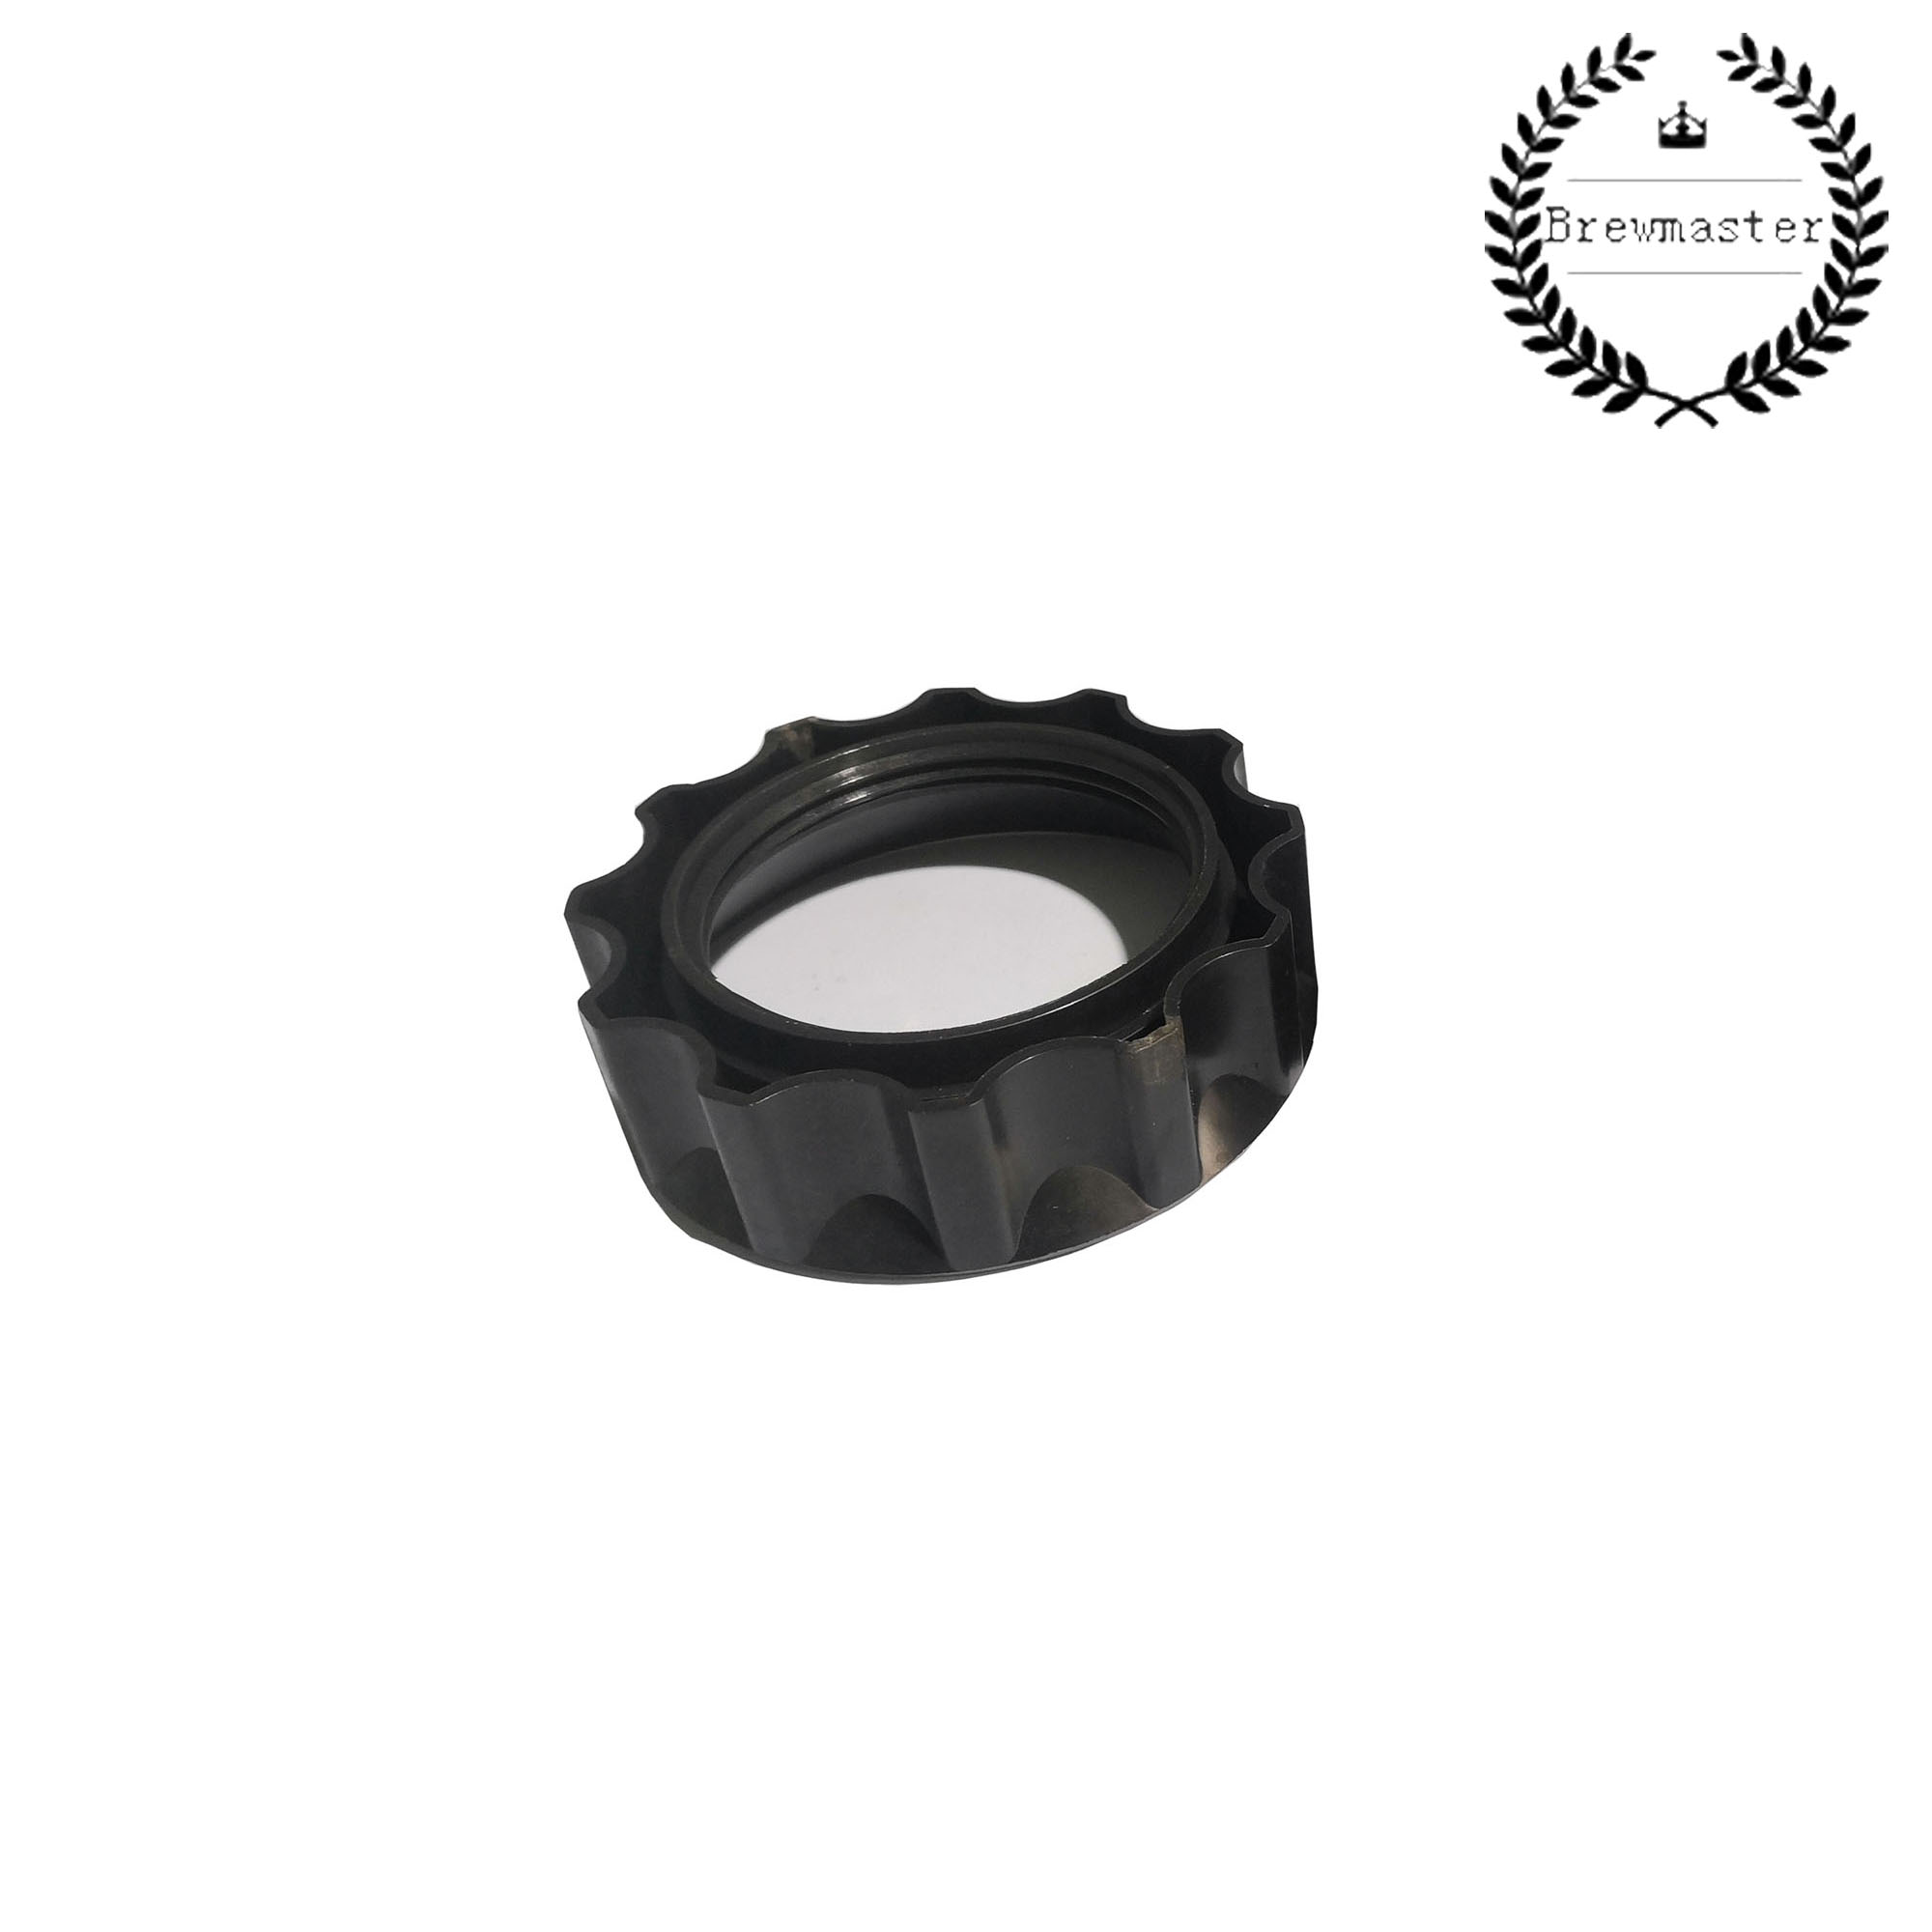 Replacement REVERSE THREAD RING  For Fermzilla